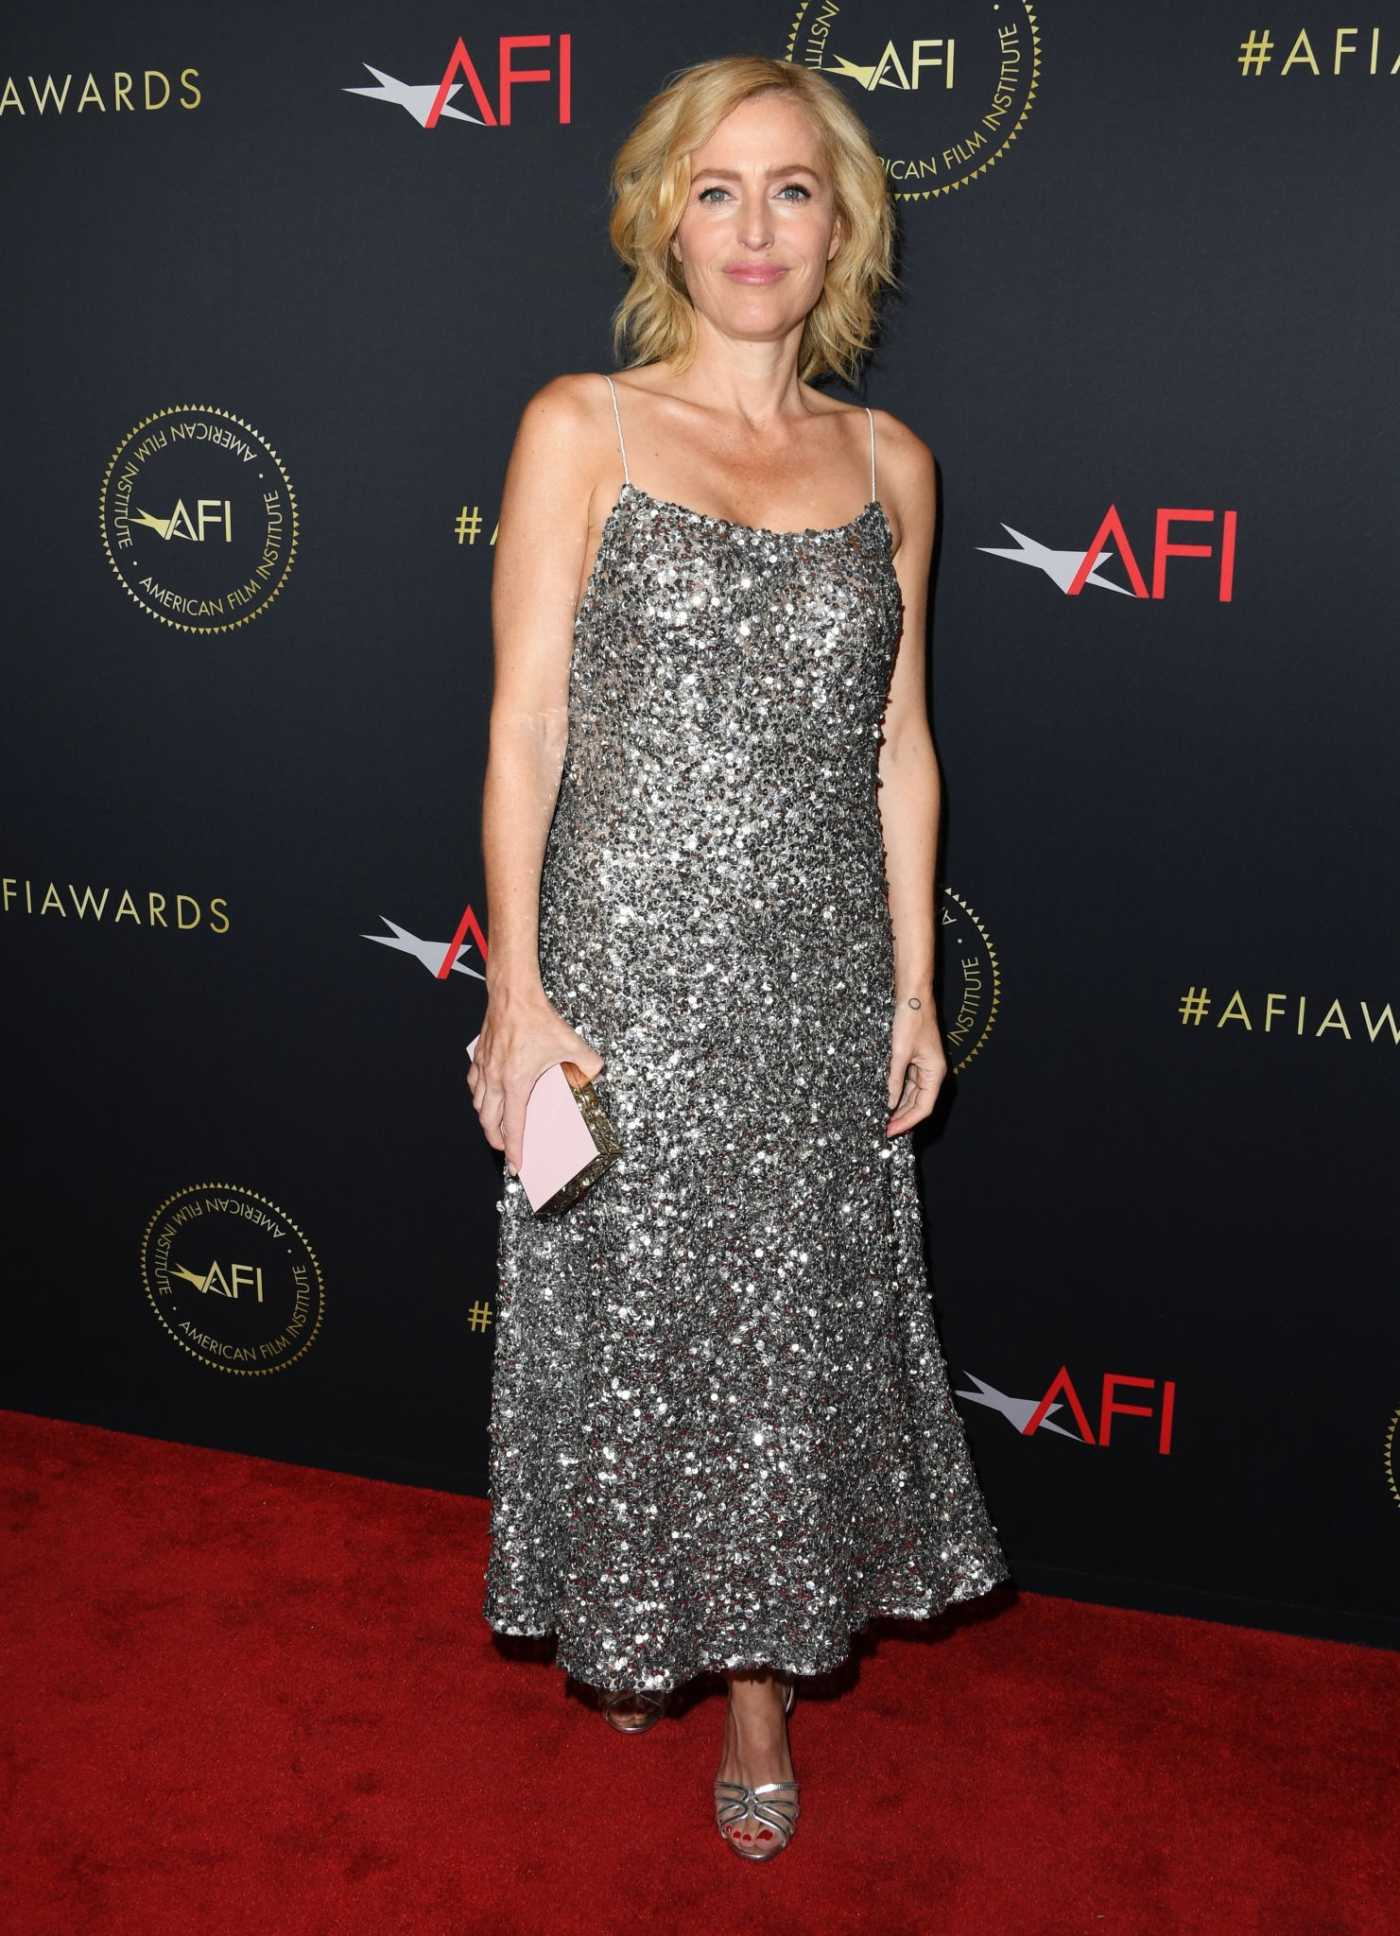 Gillian Anderson Attends the 20th Annual AFI Awards at Four Seasons Hotel Los Angeles in Beverly Hills 01/03/2020